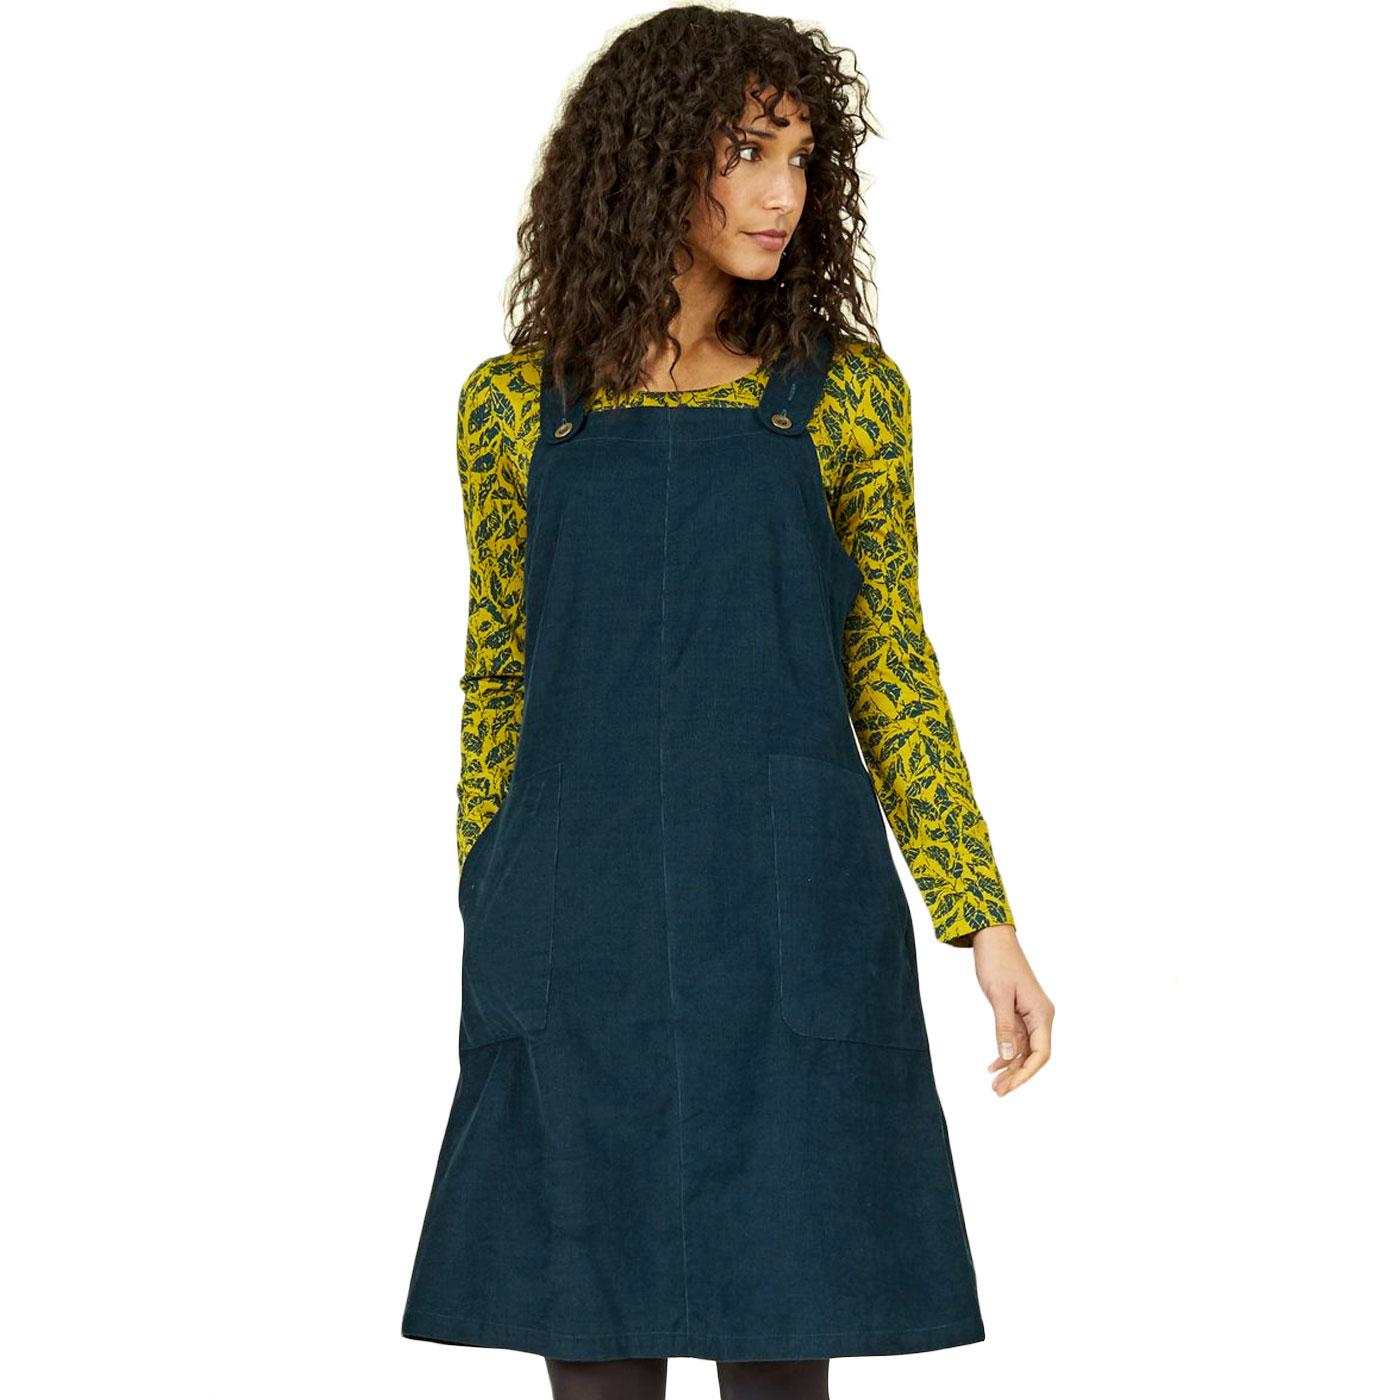 NOMADS Retro 70s Corduroy Dungarees Dress In Fir